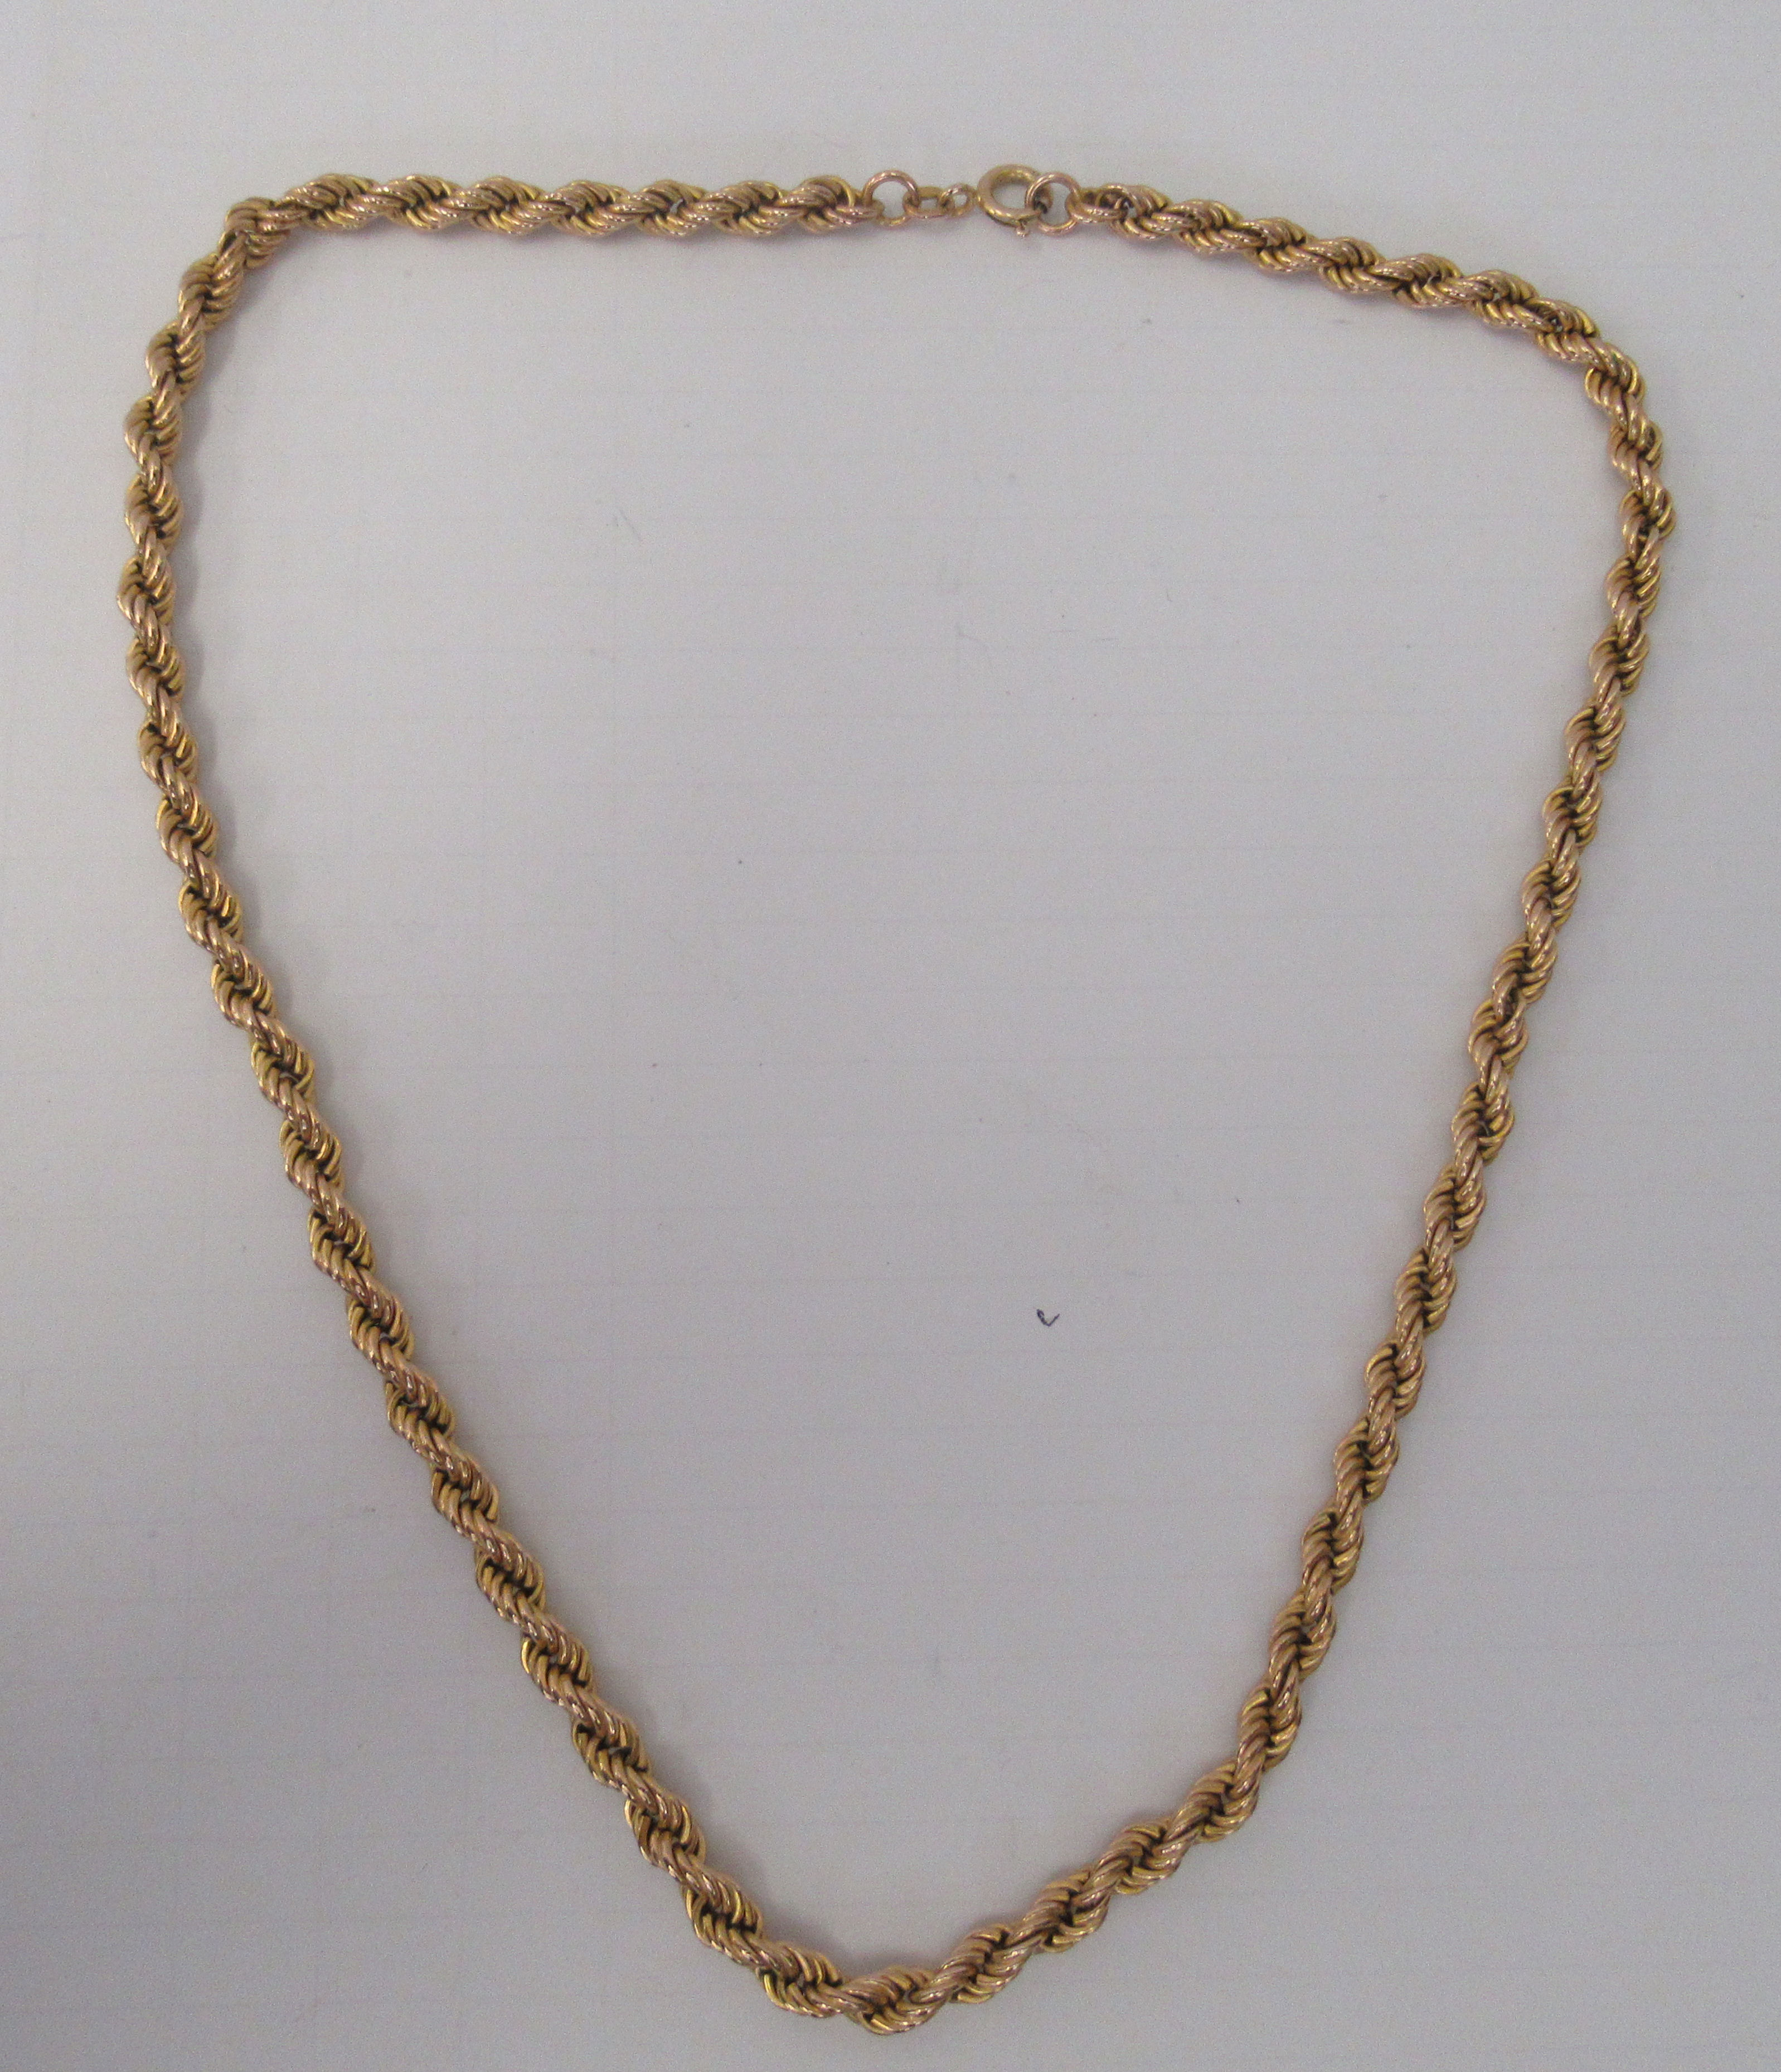 An Italian 9ct gold ropetwist design necklace